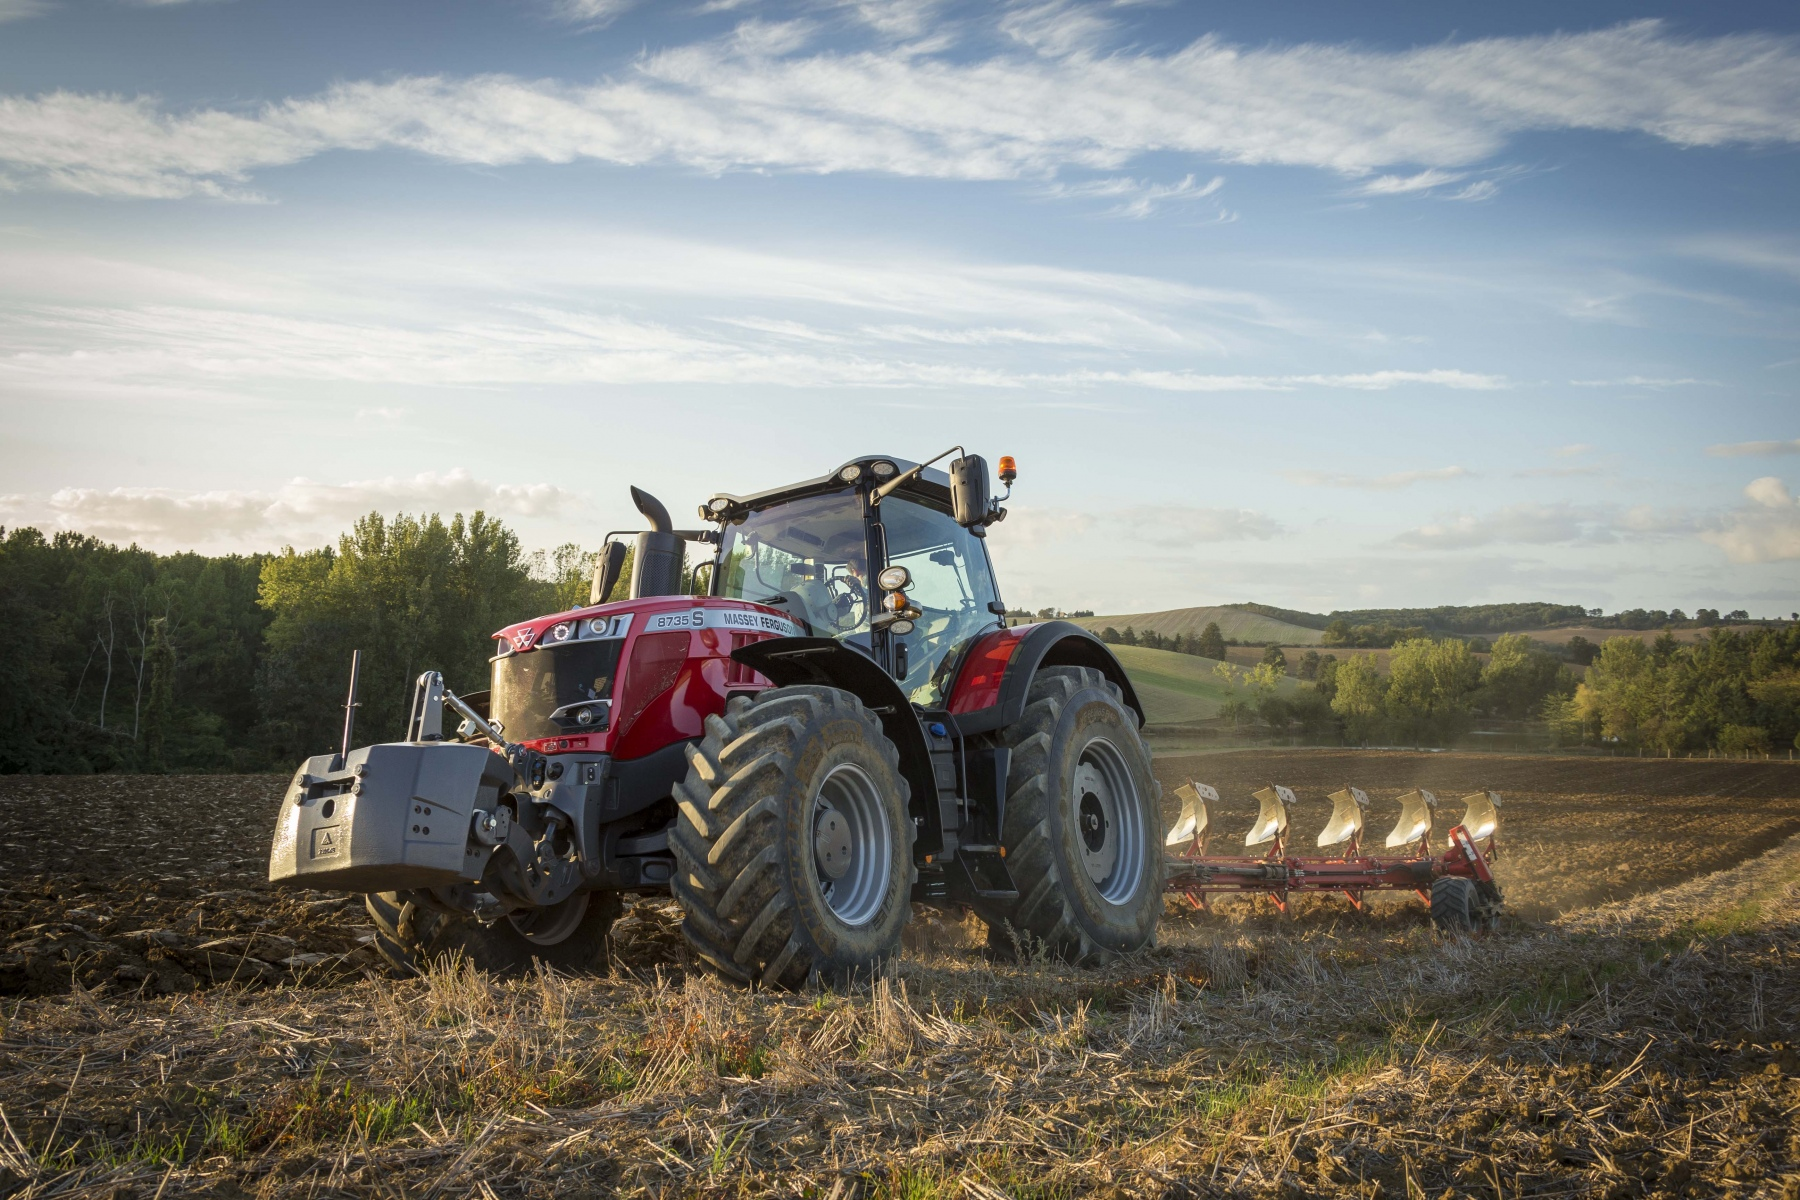 MF8735S_GregoireBesson-7FPlough_FR_0917-8771_138765